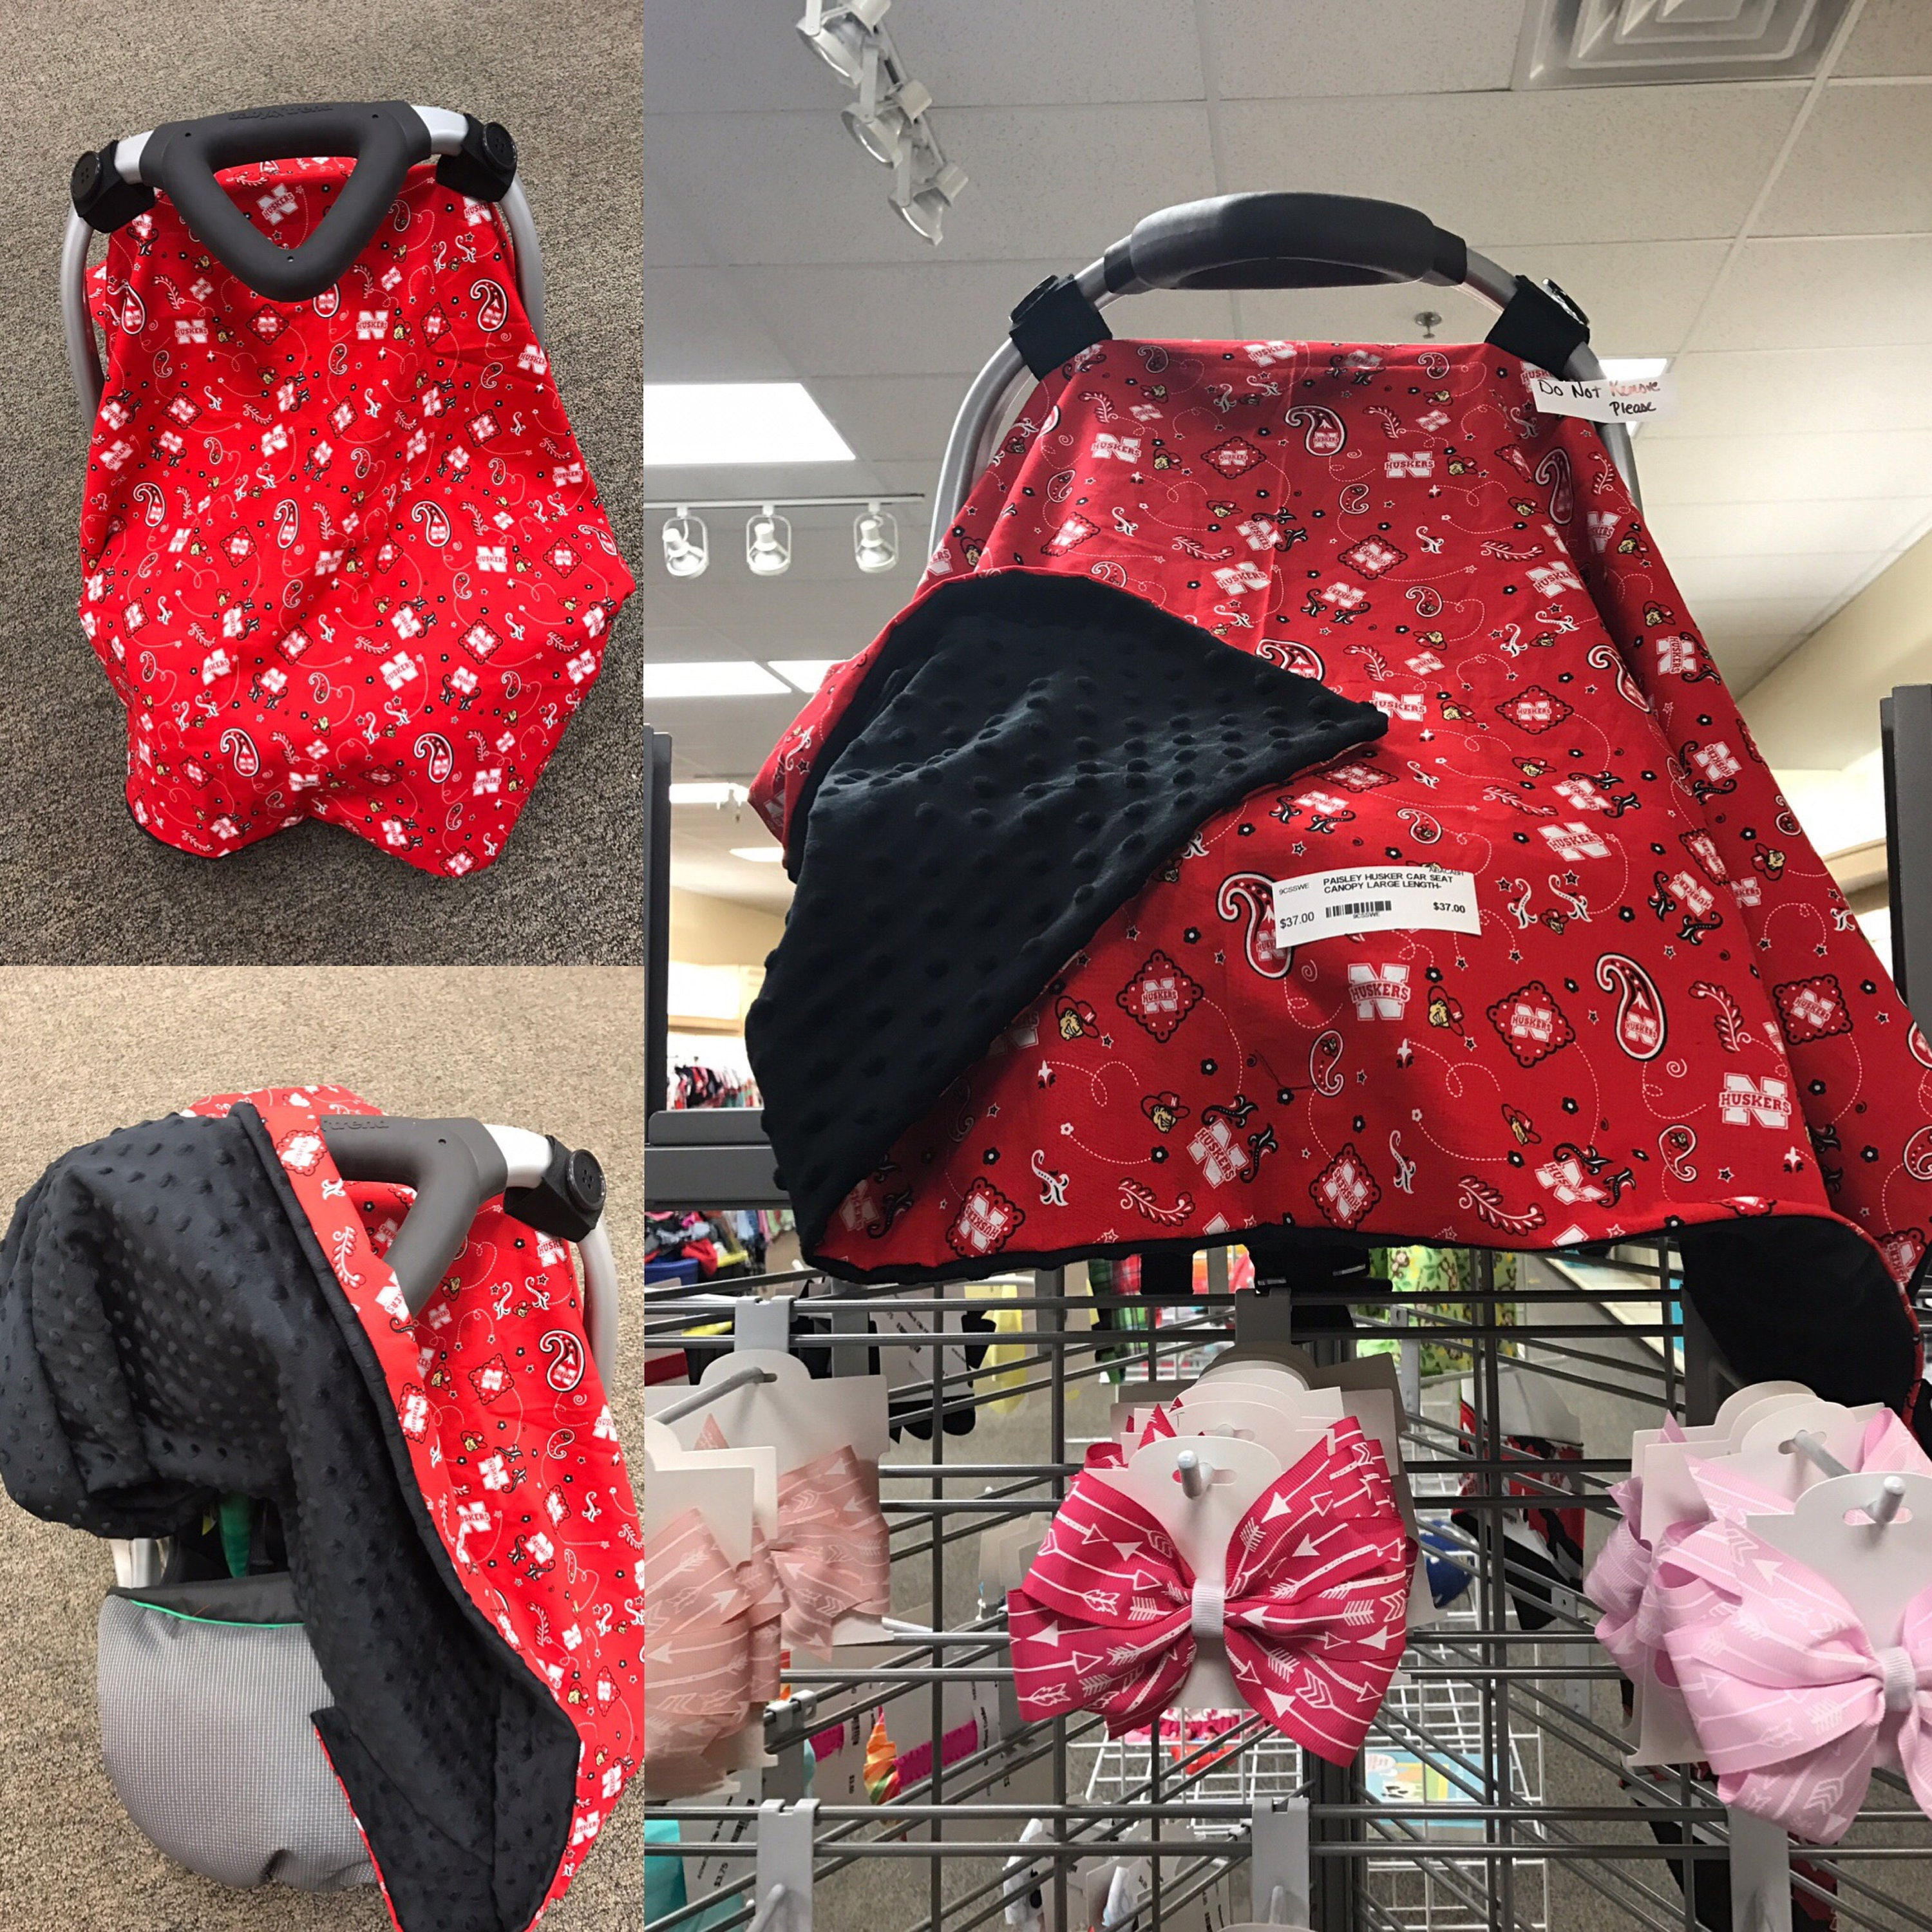 & Husker Paisley Car Seat Canopy with Black Minky Dimple Dot Backing